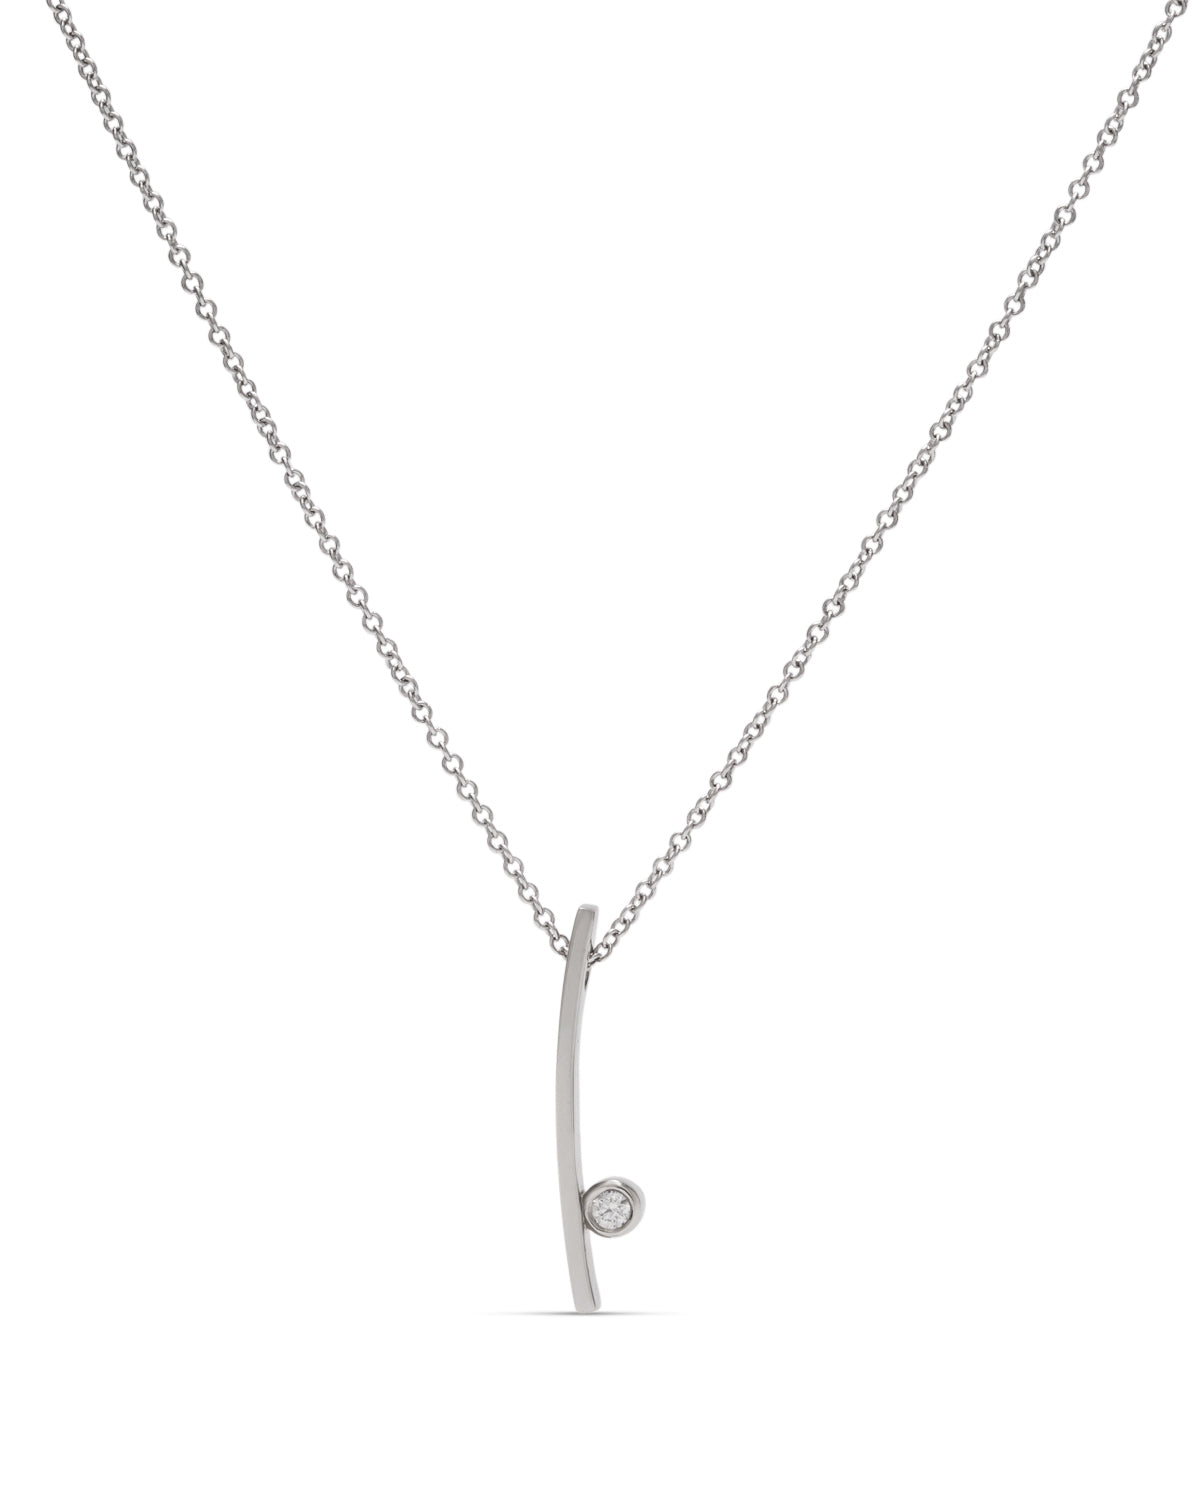 19k & 18k White Gold Diamond Pendant - Charles Koll Jewellers